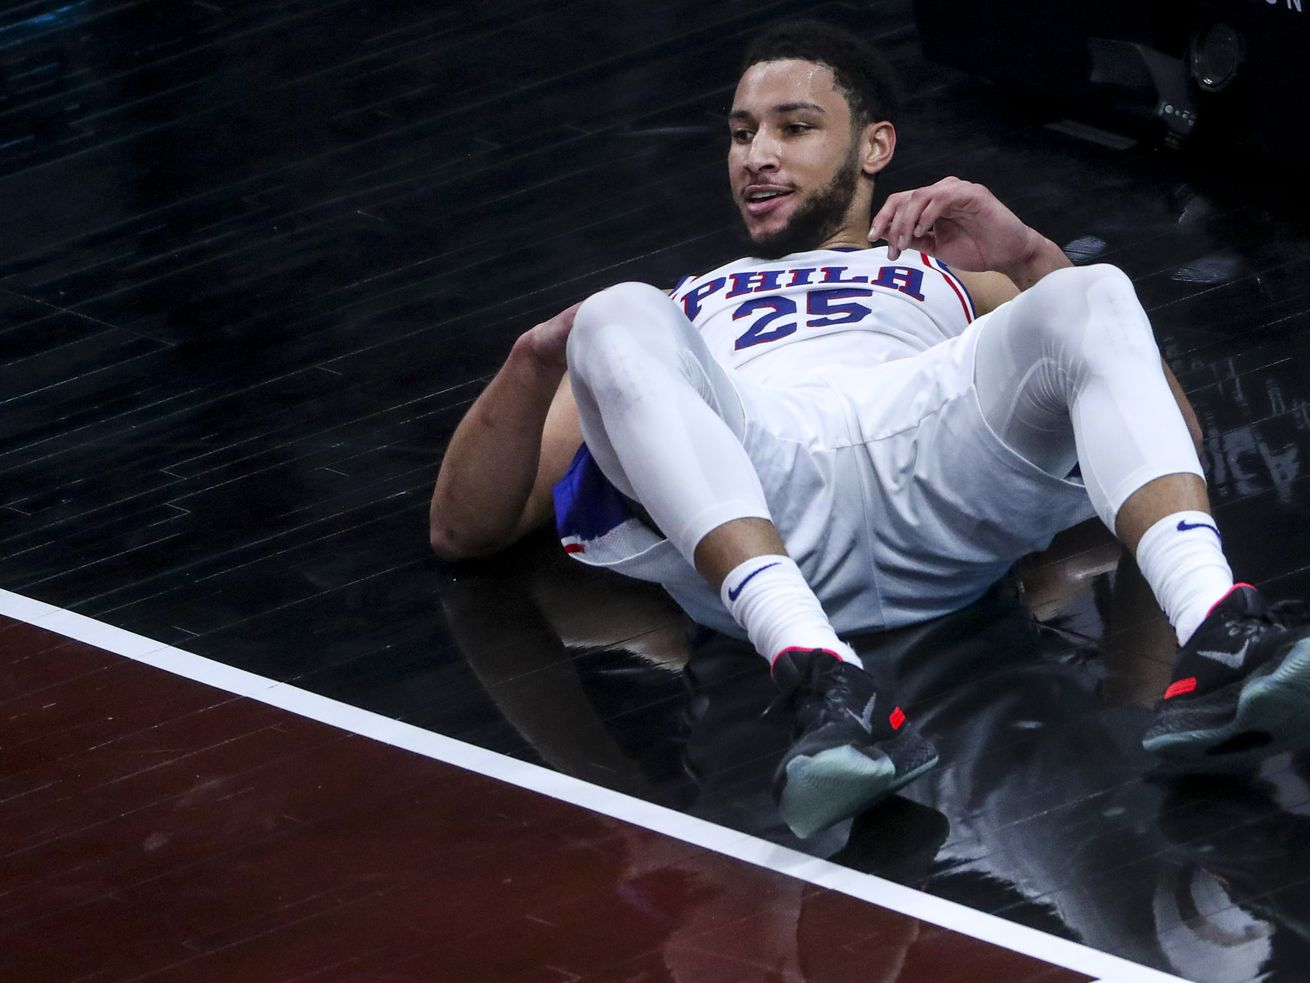 Philadelphia 76ers guard Ben Simmons (25) looks for a foul after being knocked to the court during the Philadelphia 76ers at Utah Jazz NBA basketball game at Vivint Smart Home Arena in Salt Lake City on Monday, Feb. 15, 2021.